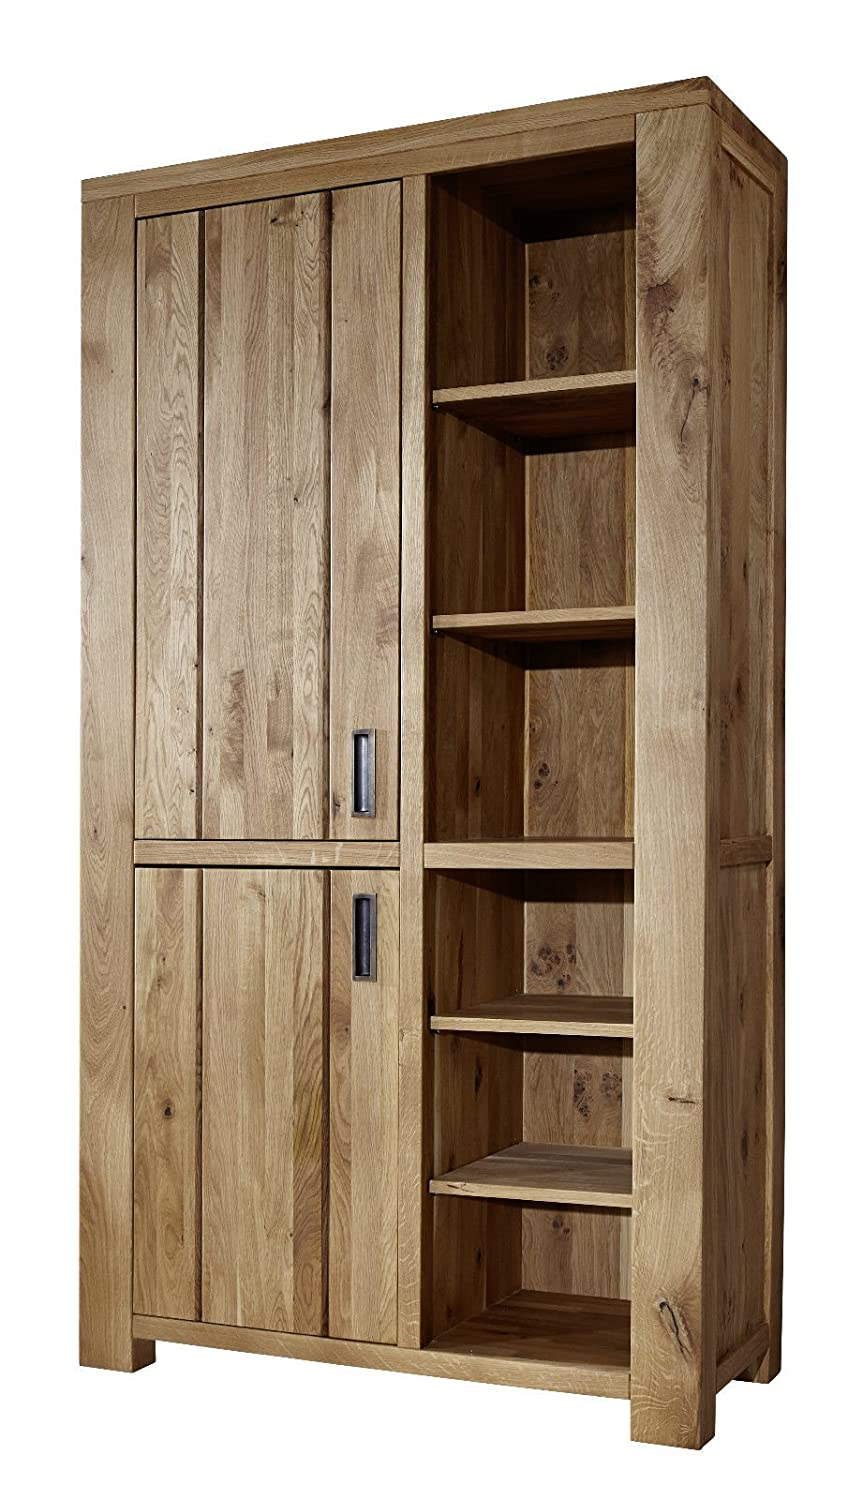 regal schrank b cherregal wildeiche massiv eiche holz. Black Bedroom Furniture Sets. Home Design Ideas